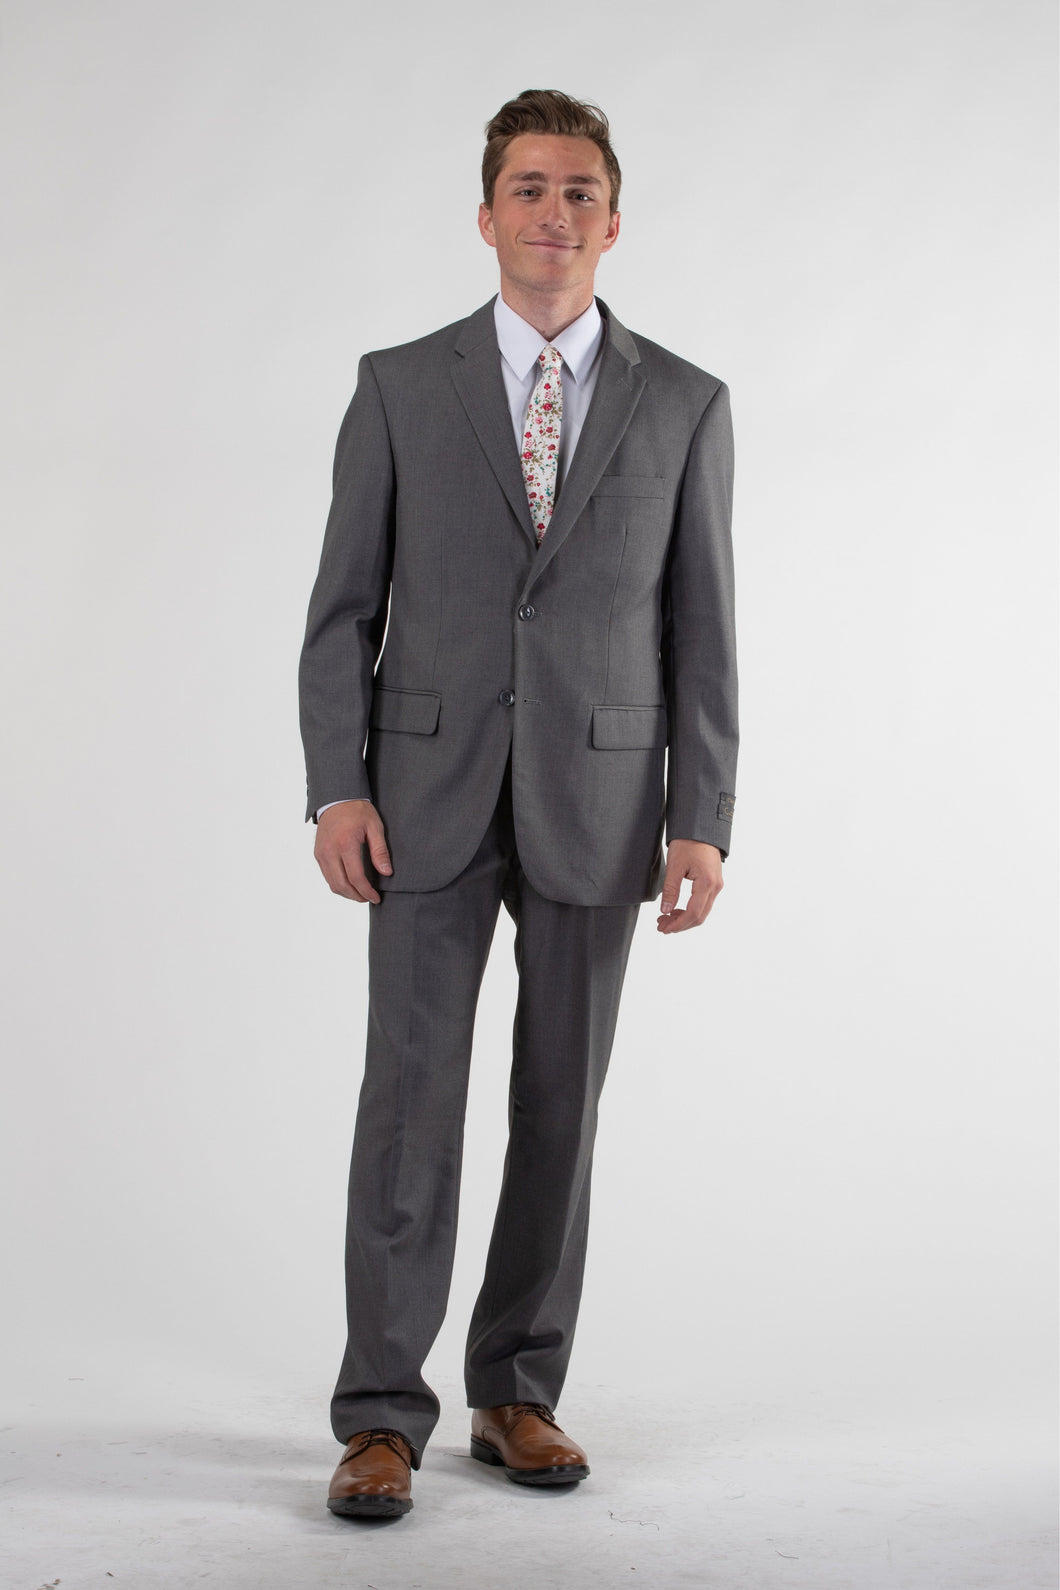 General - Signature Suit Classic Grey